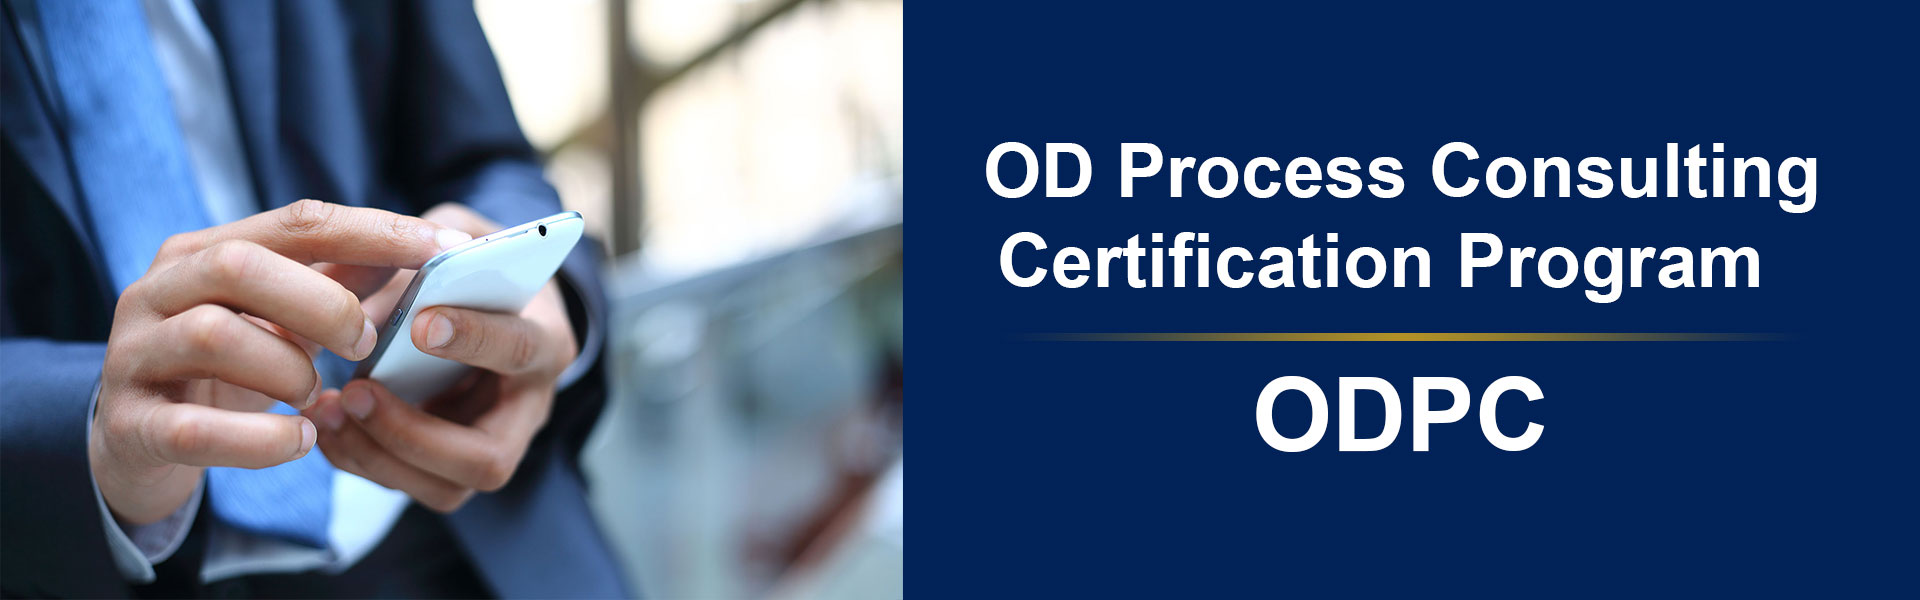 Organization Development Process Consulting Certification Program ODPC